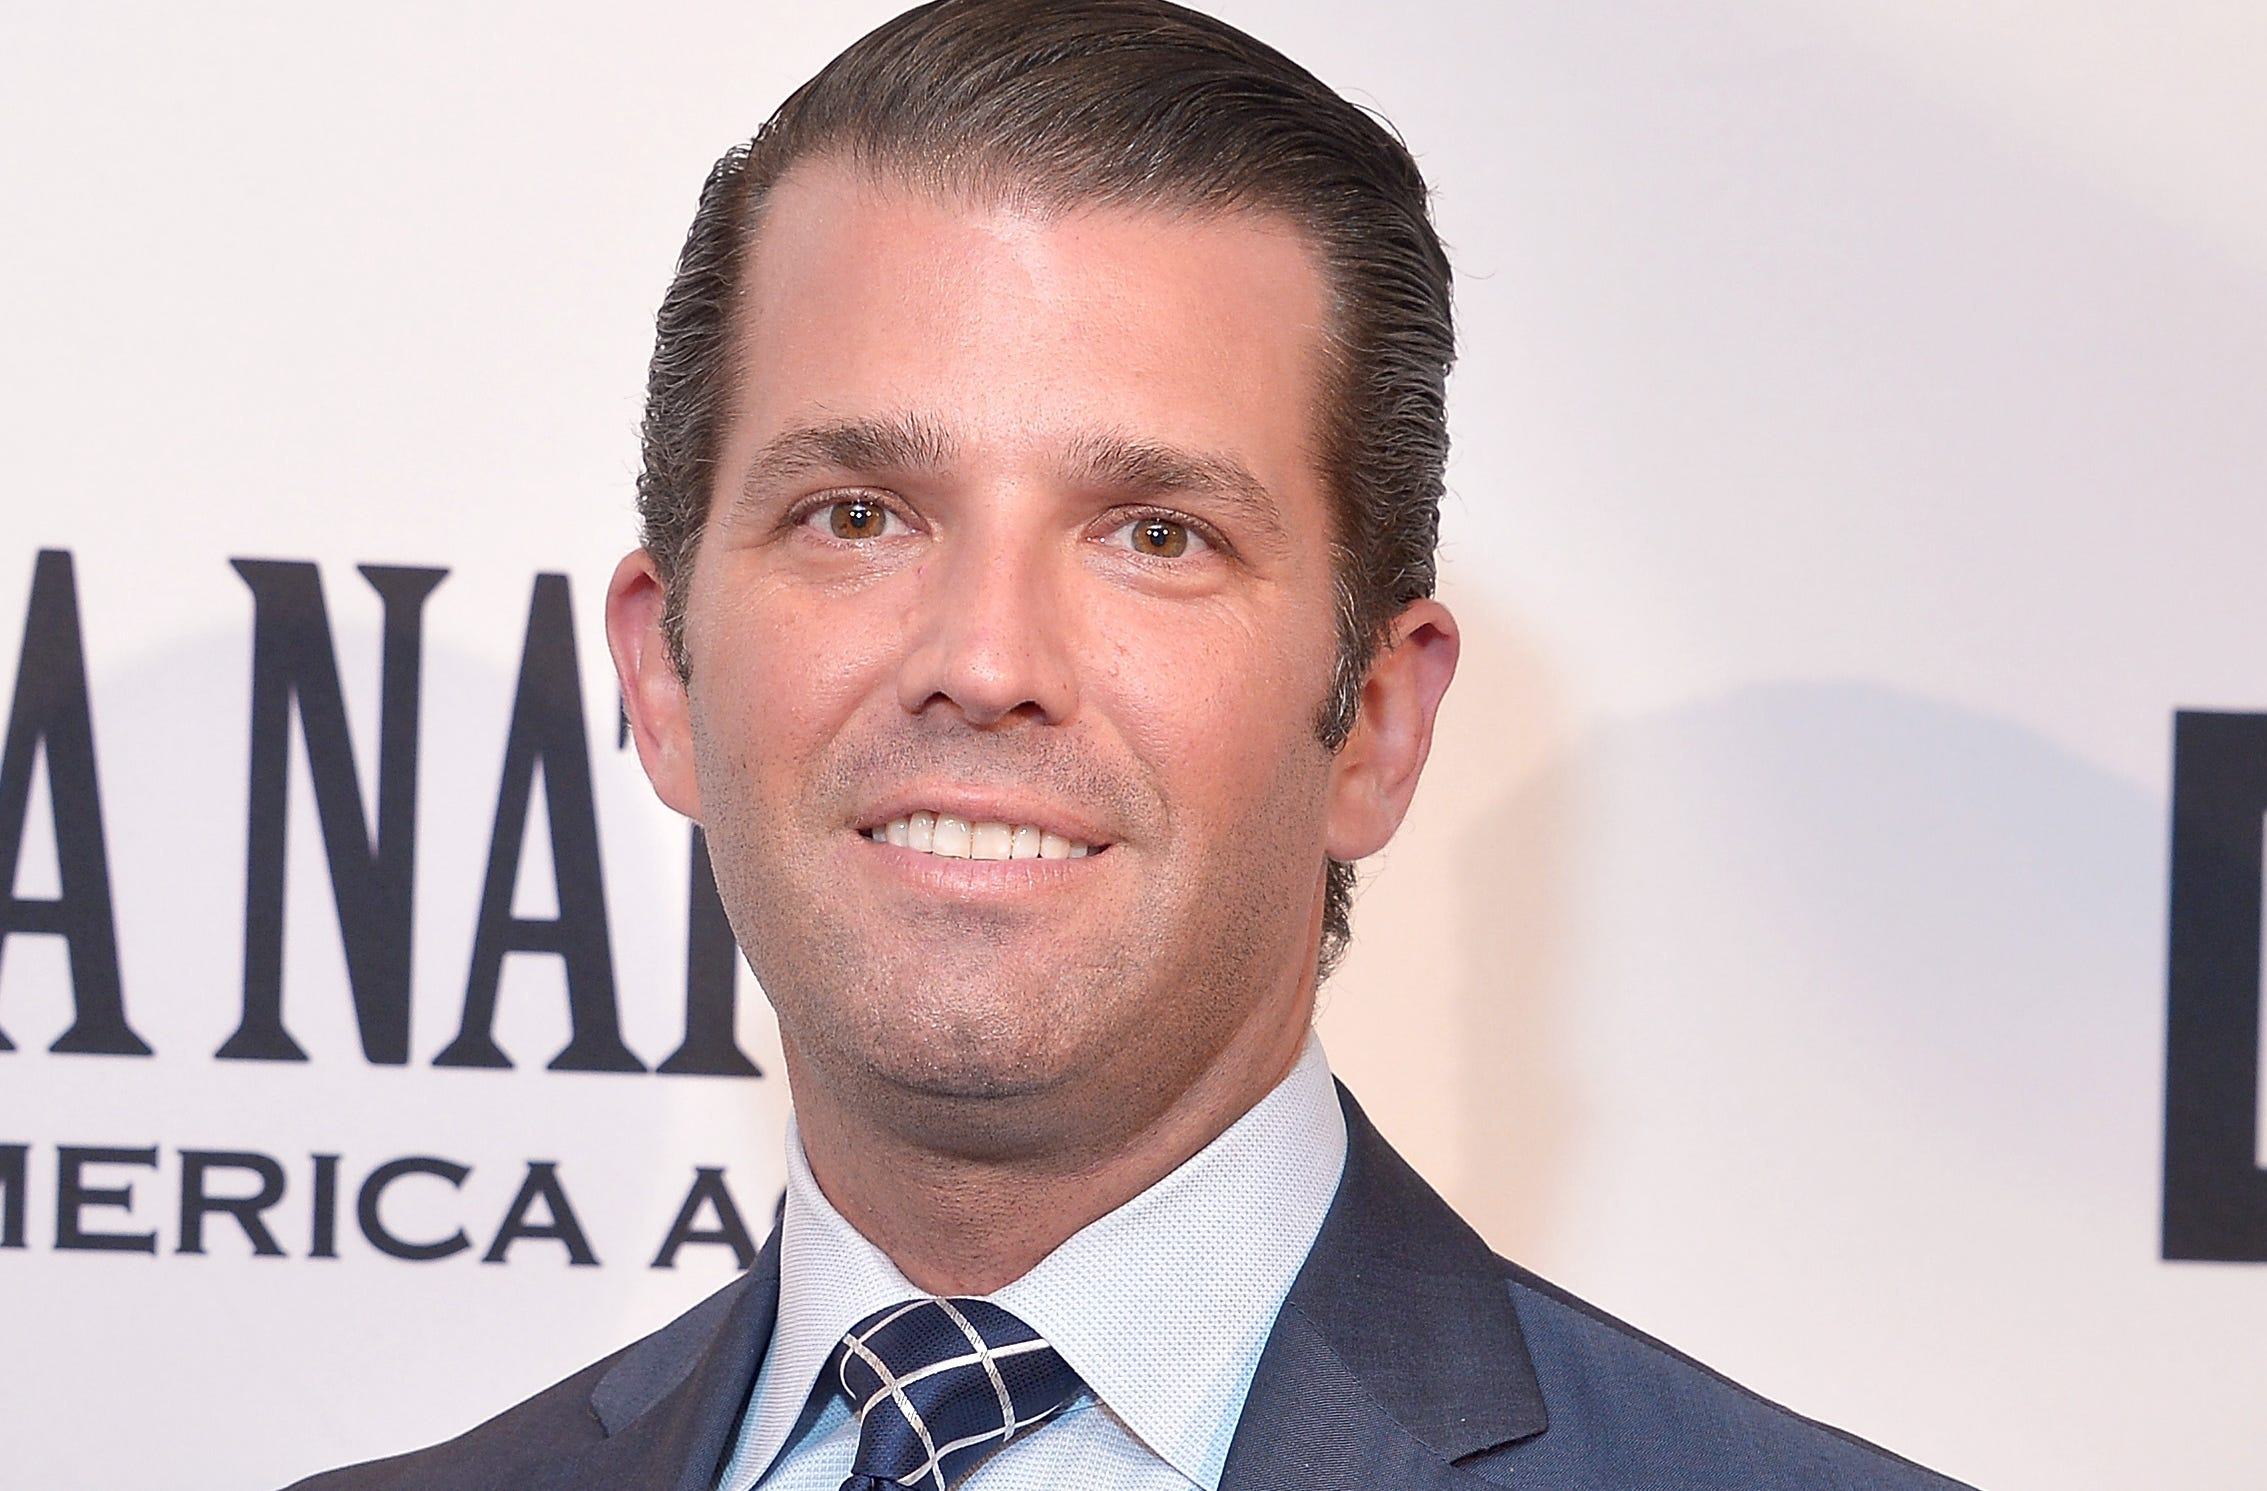 """Donald Trump, Jr. attends the Washington premiere of the film, """"Death of a Nation,"""" at E Street Cinema on Aug. 1, 2018, in Washington, D.C."""